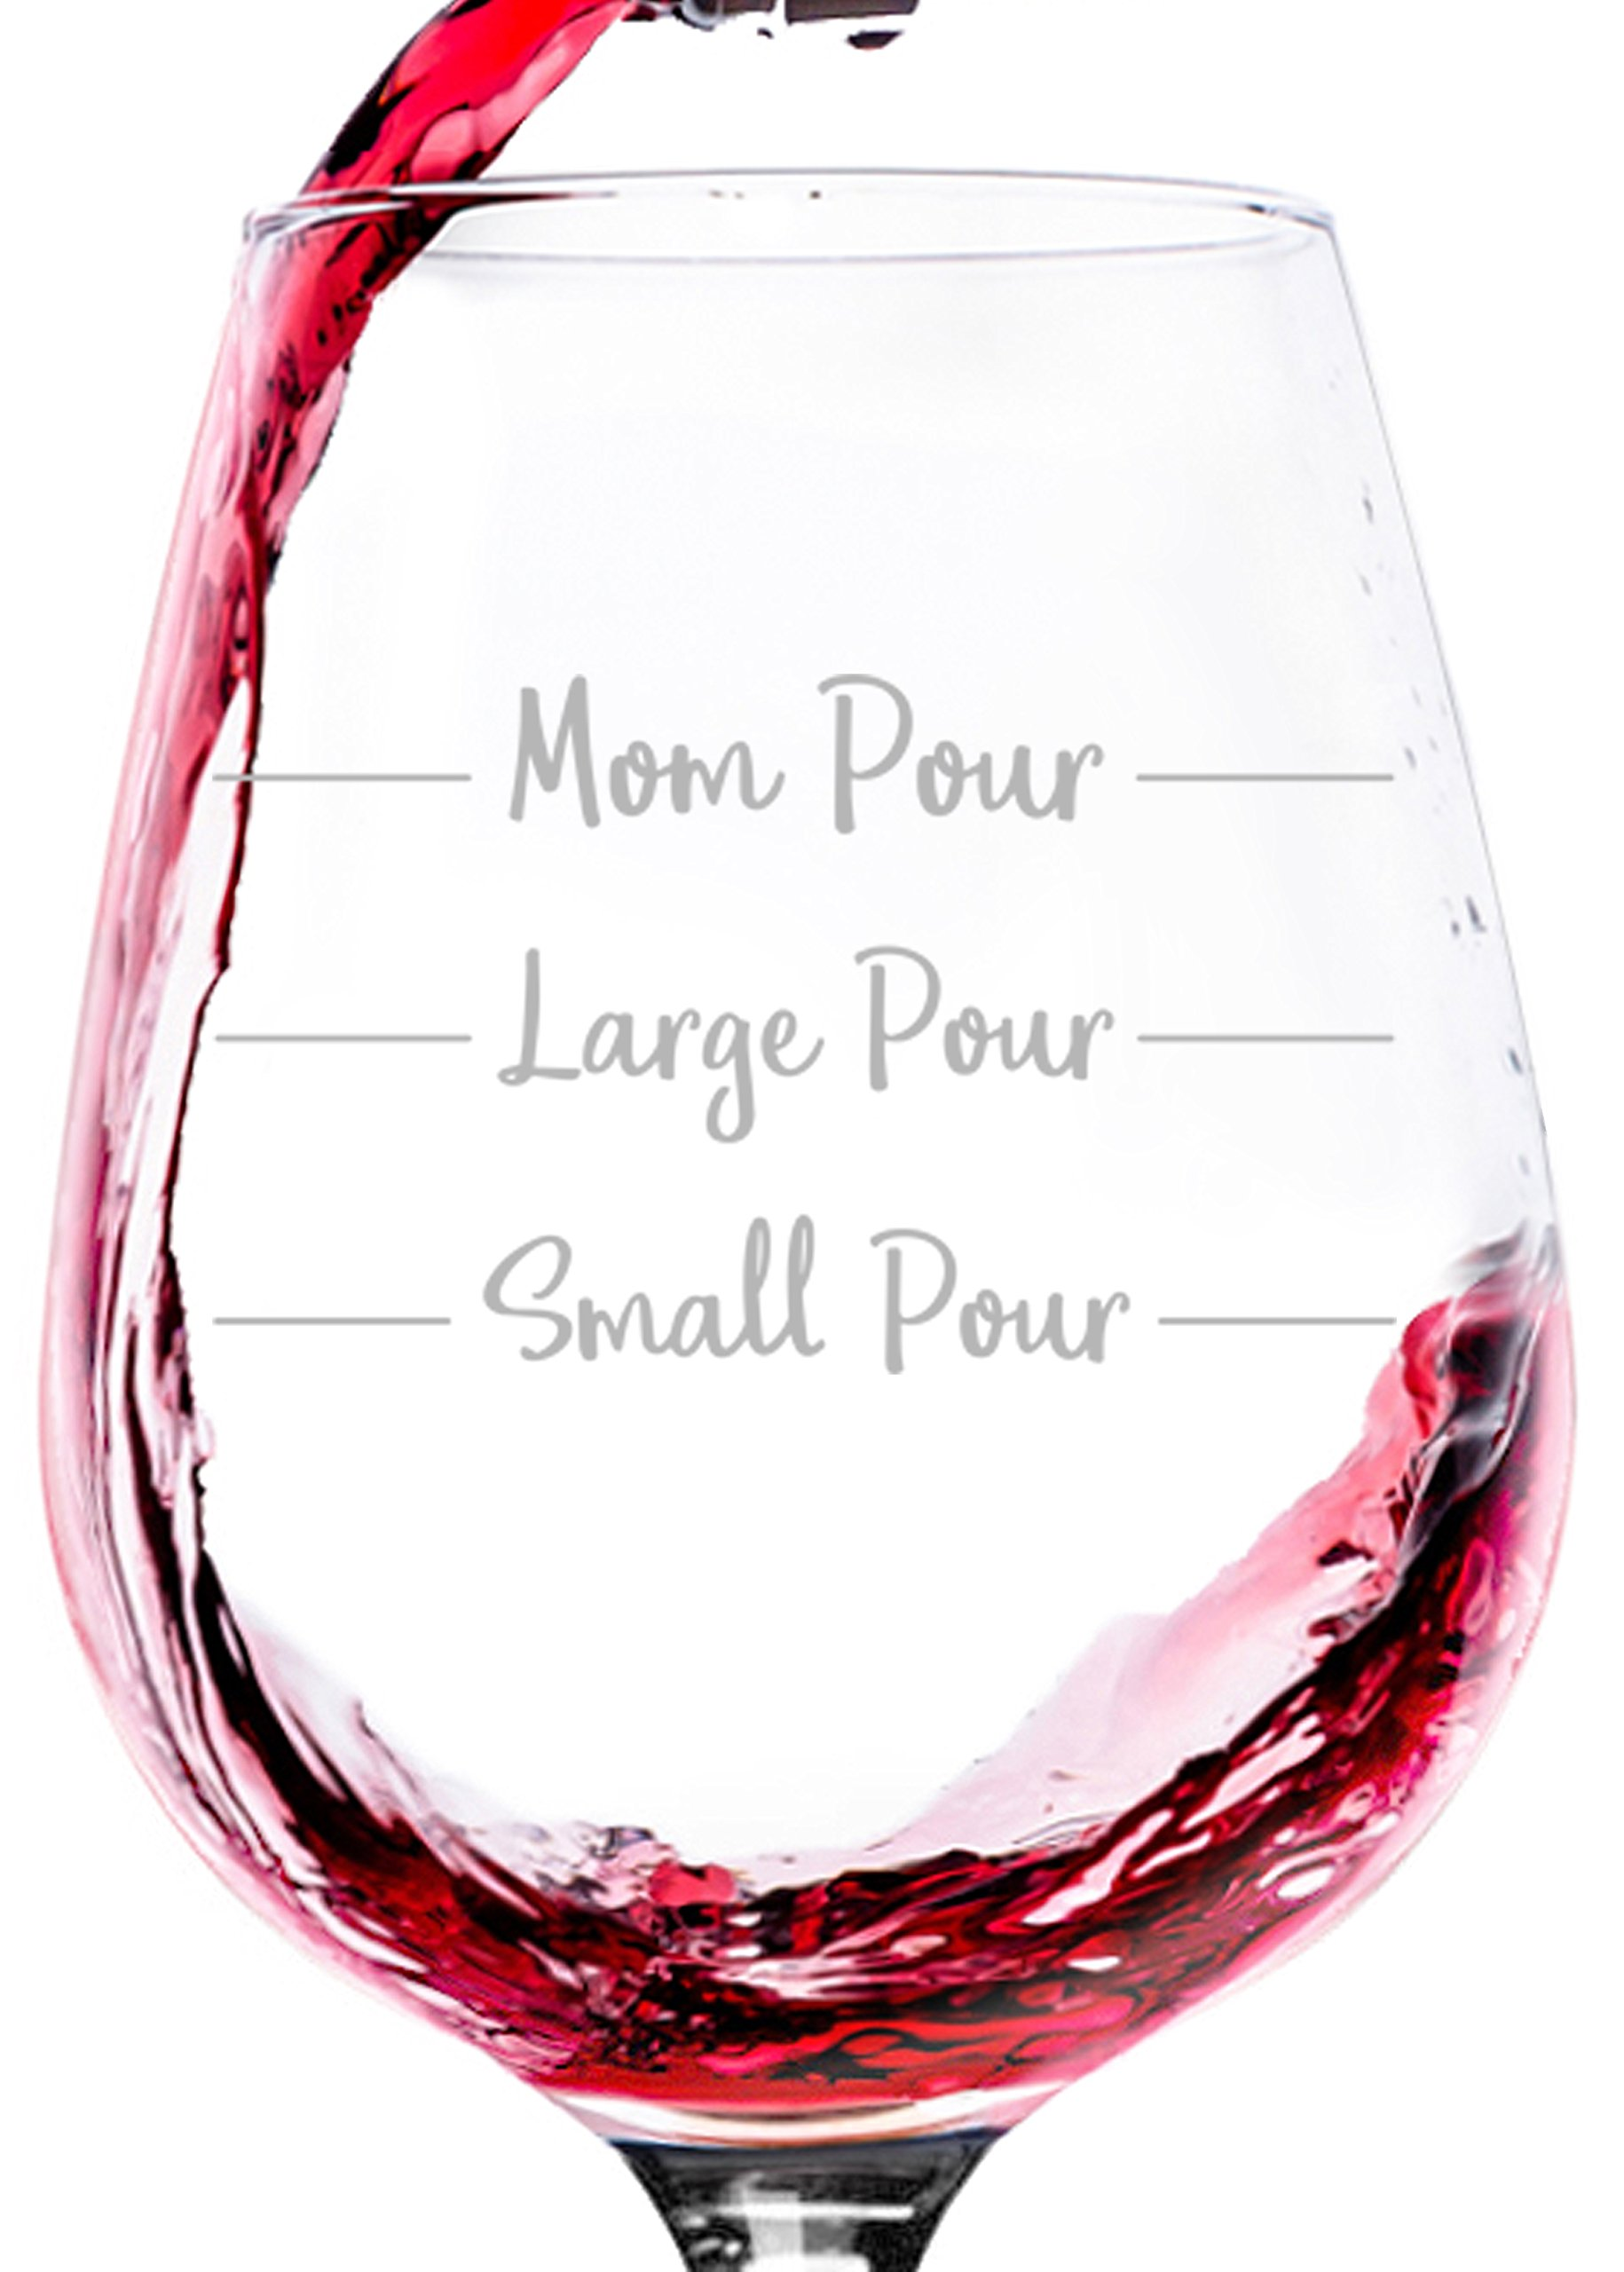 Mom Pour Funny Wine Glass - Best Christmas Gag Gifts For Mom, Women ...